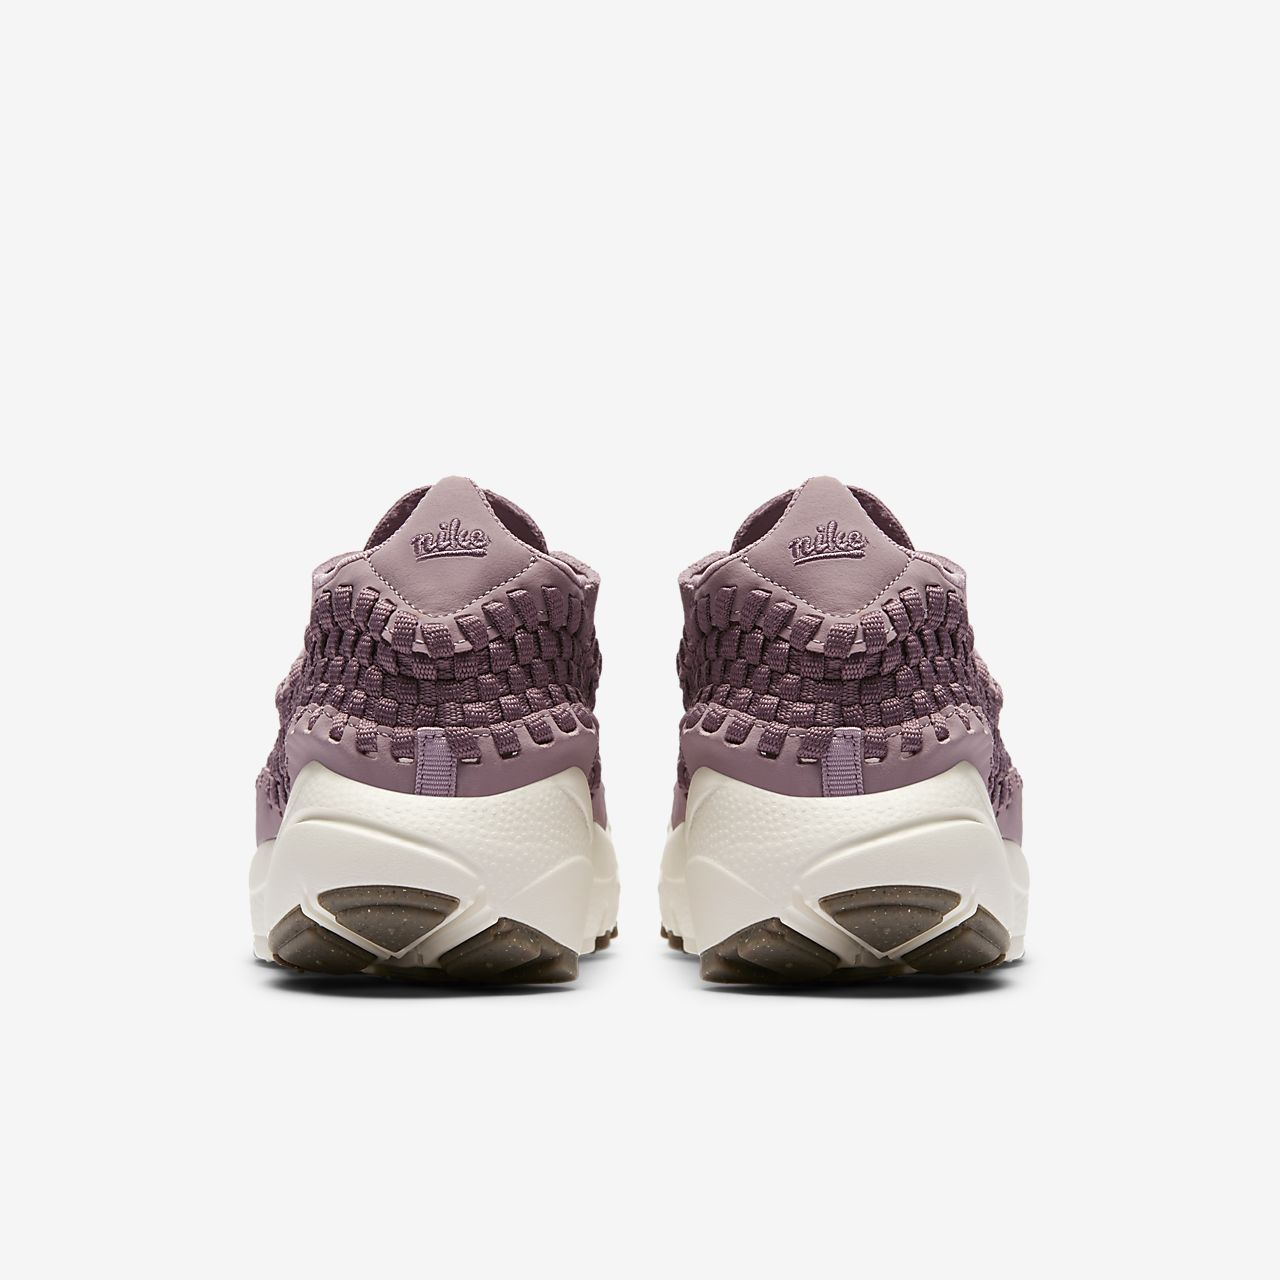 sports shoes 7c6ee f0b69 003f4 f5fbe canada nike air ltstronggtfootscapelt stronggt woven nike air  footscape woven sko til kvinder 25714 3cb5b ...